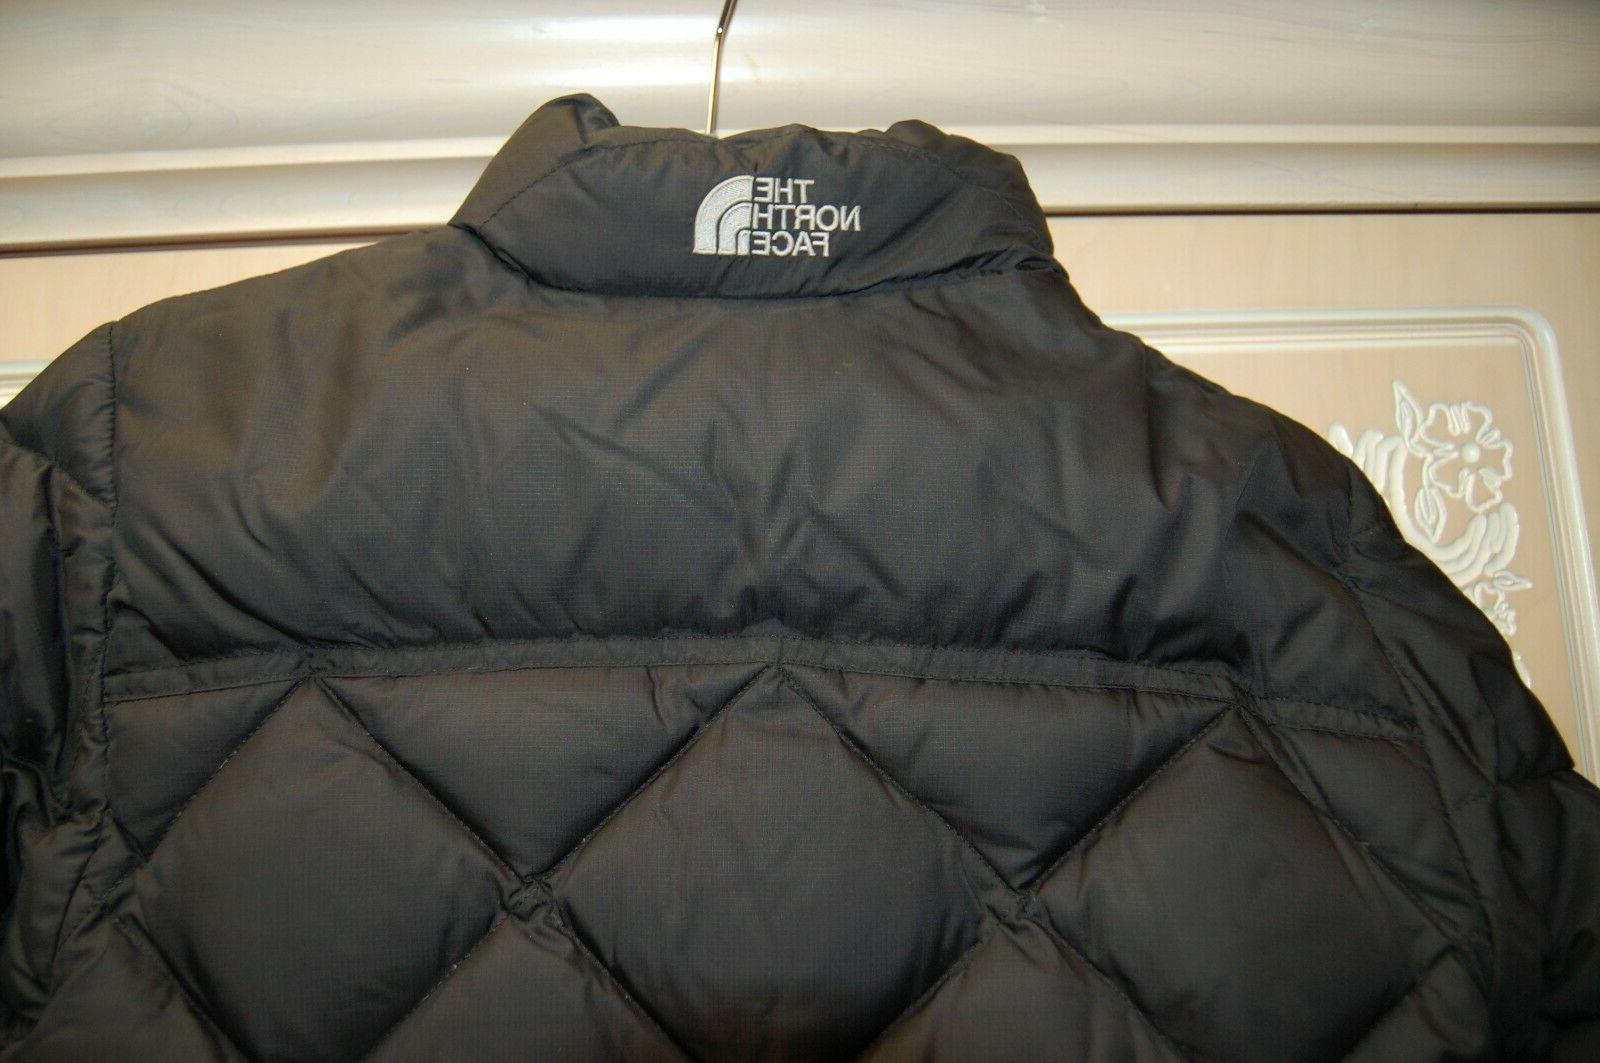 EUC The North Face BLACK MD Puffer Jacket SKI